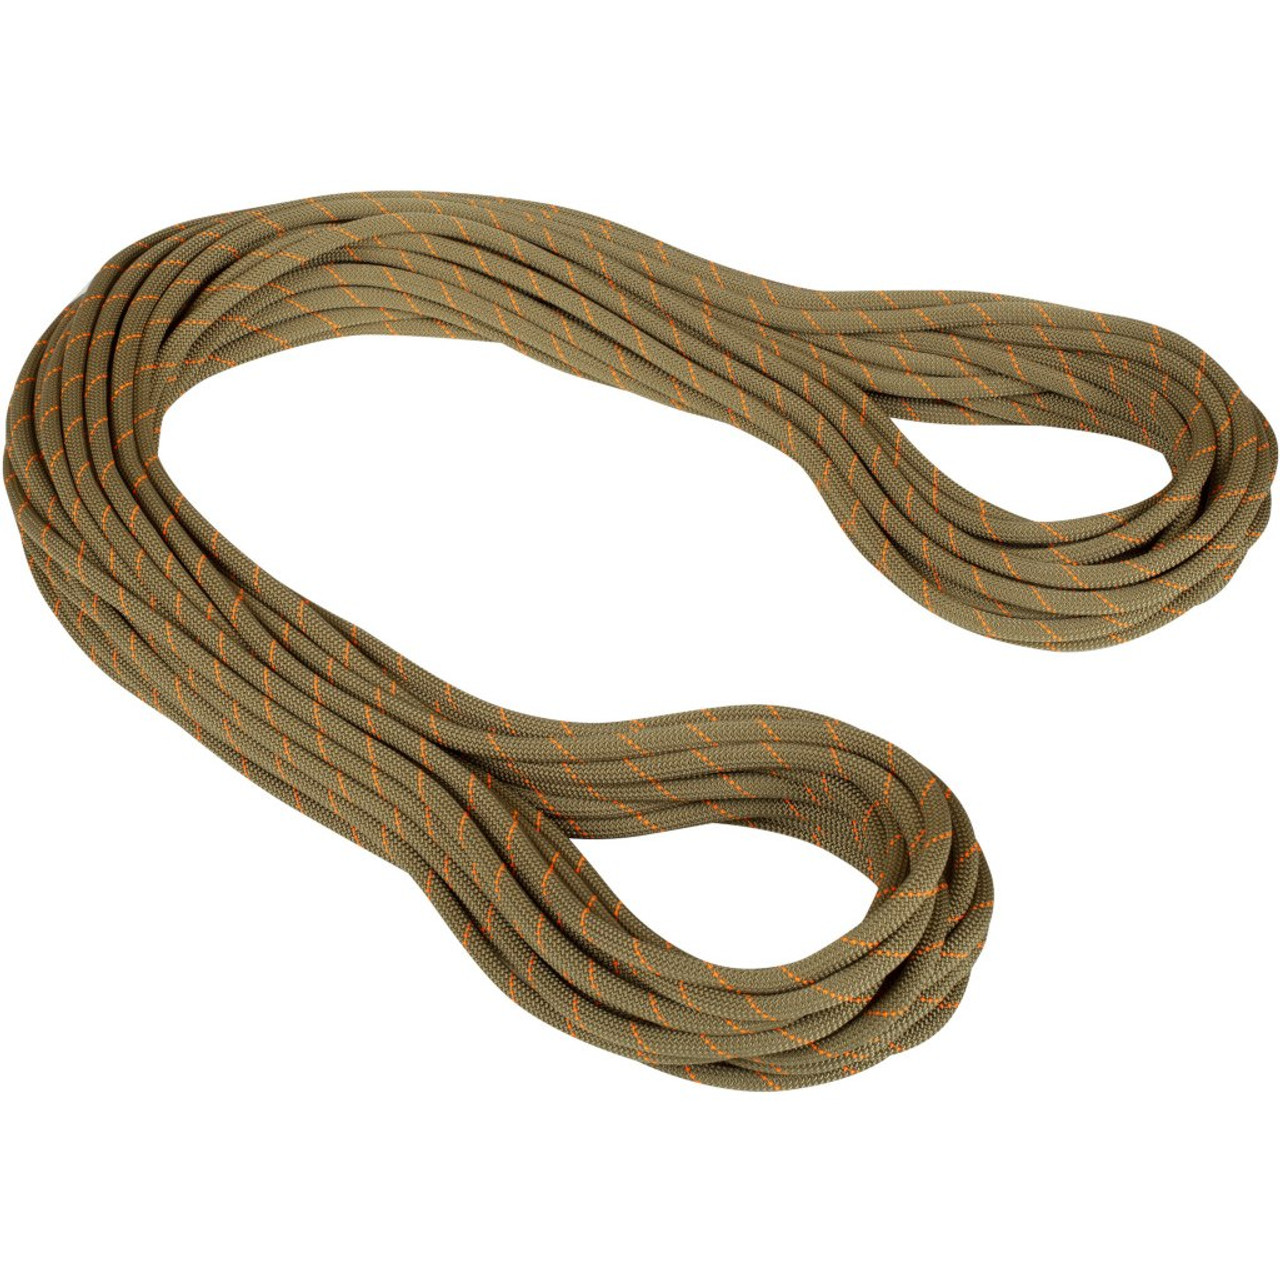 Mammut 9.9 Gym Workhorse Classic Rope - Boa